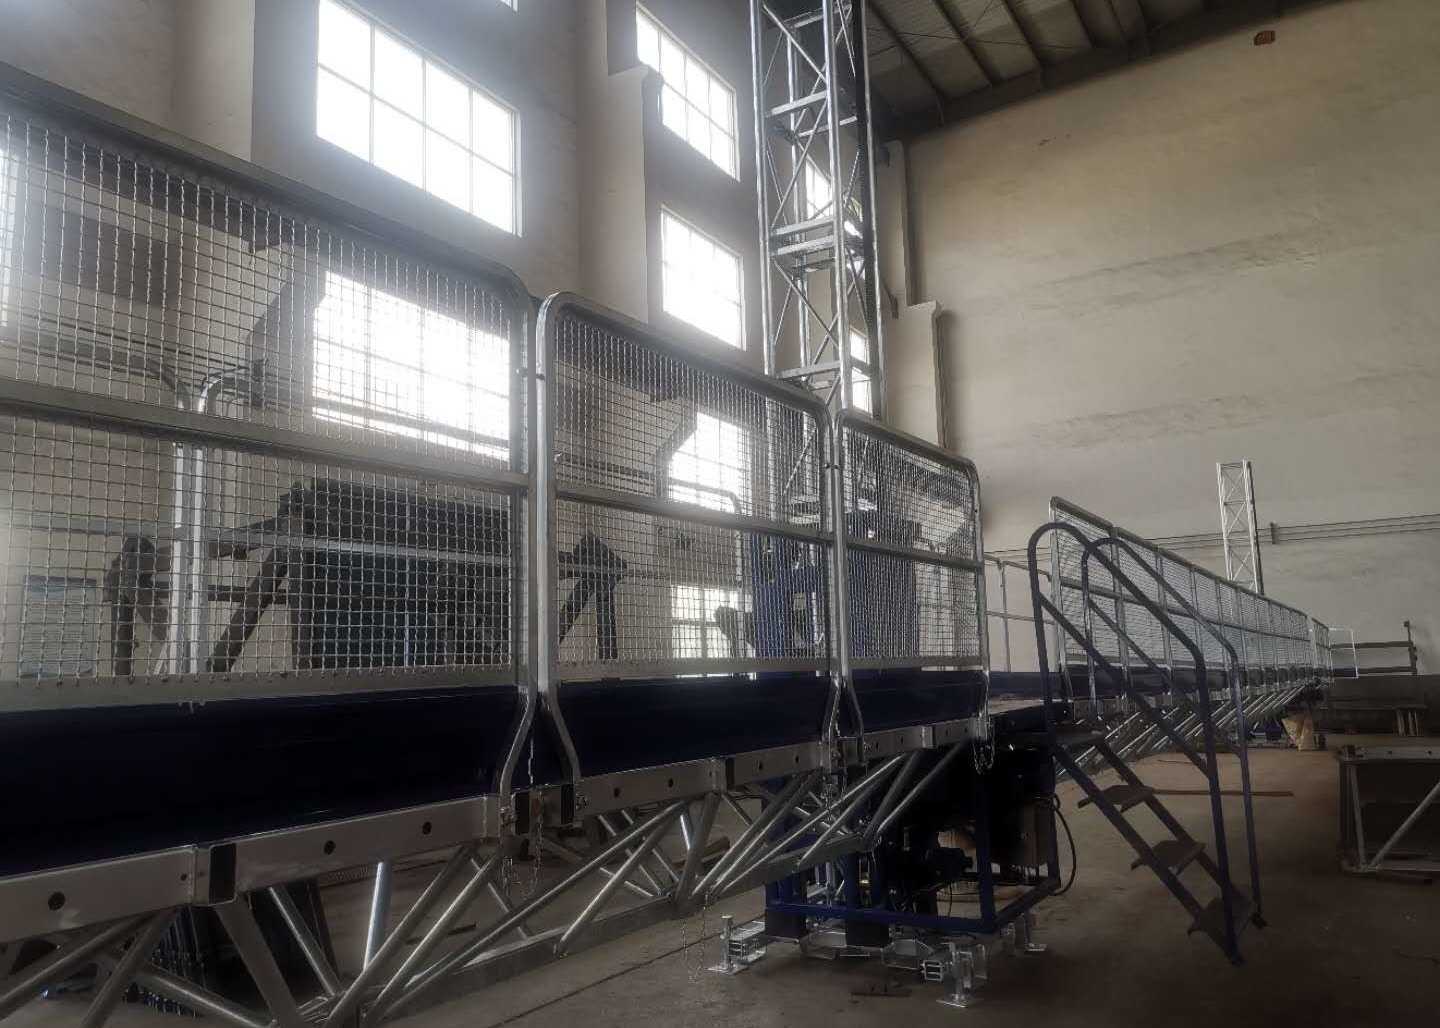 Building Cleaning Mast Climbing Work Platform Building Construction Equipment